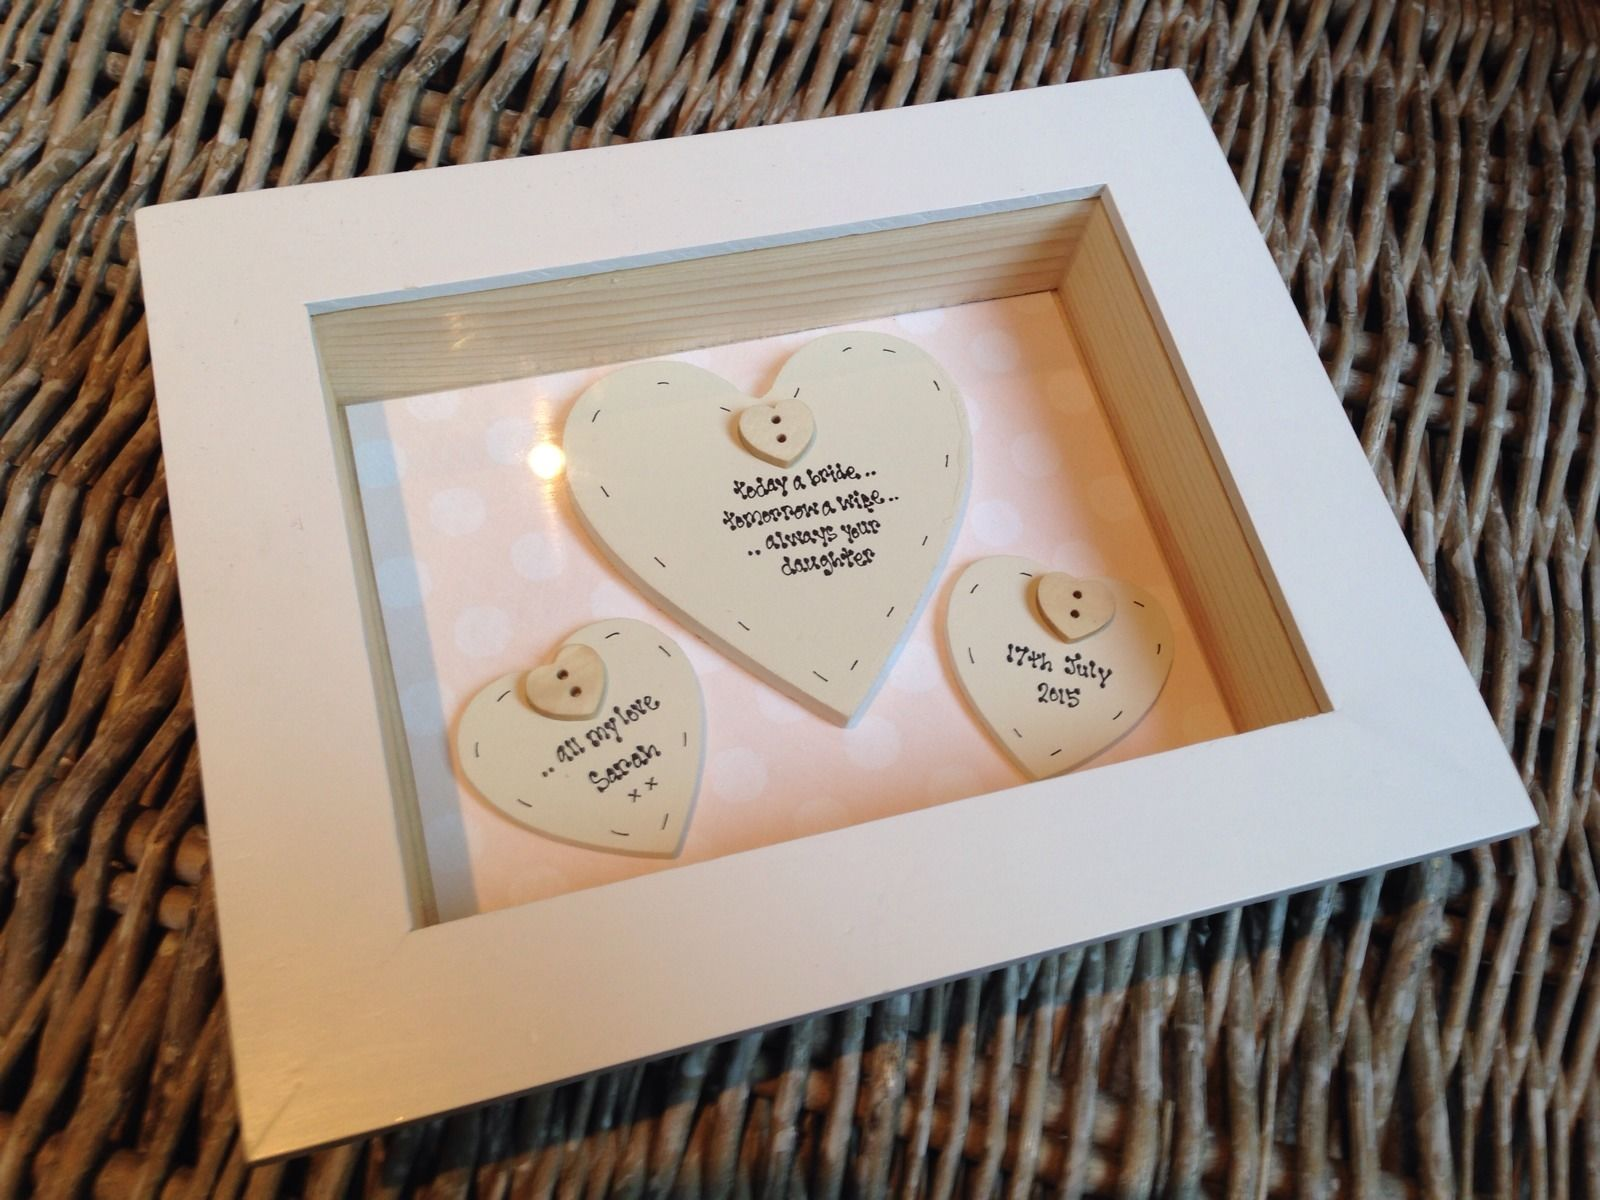 ... Chic Box Frame Gift For Mother Of The Bride. Mum Mom Wedding